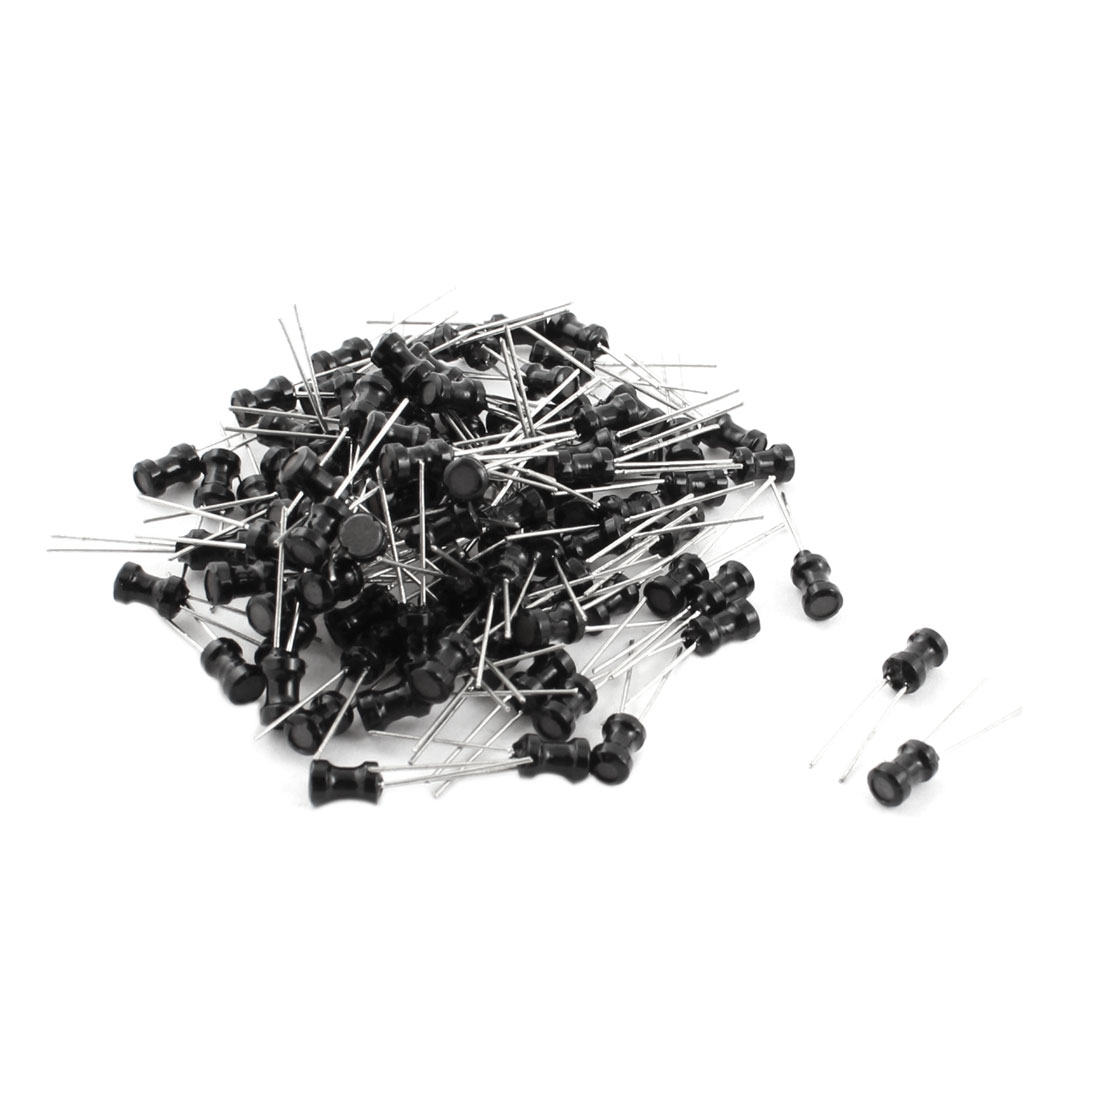 100Pcs Through Hole 1mH 100mA 4x6mm 10% Radial Lead Inductor